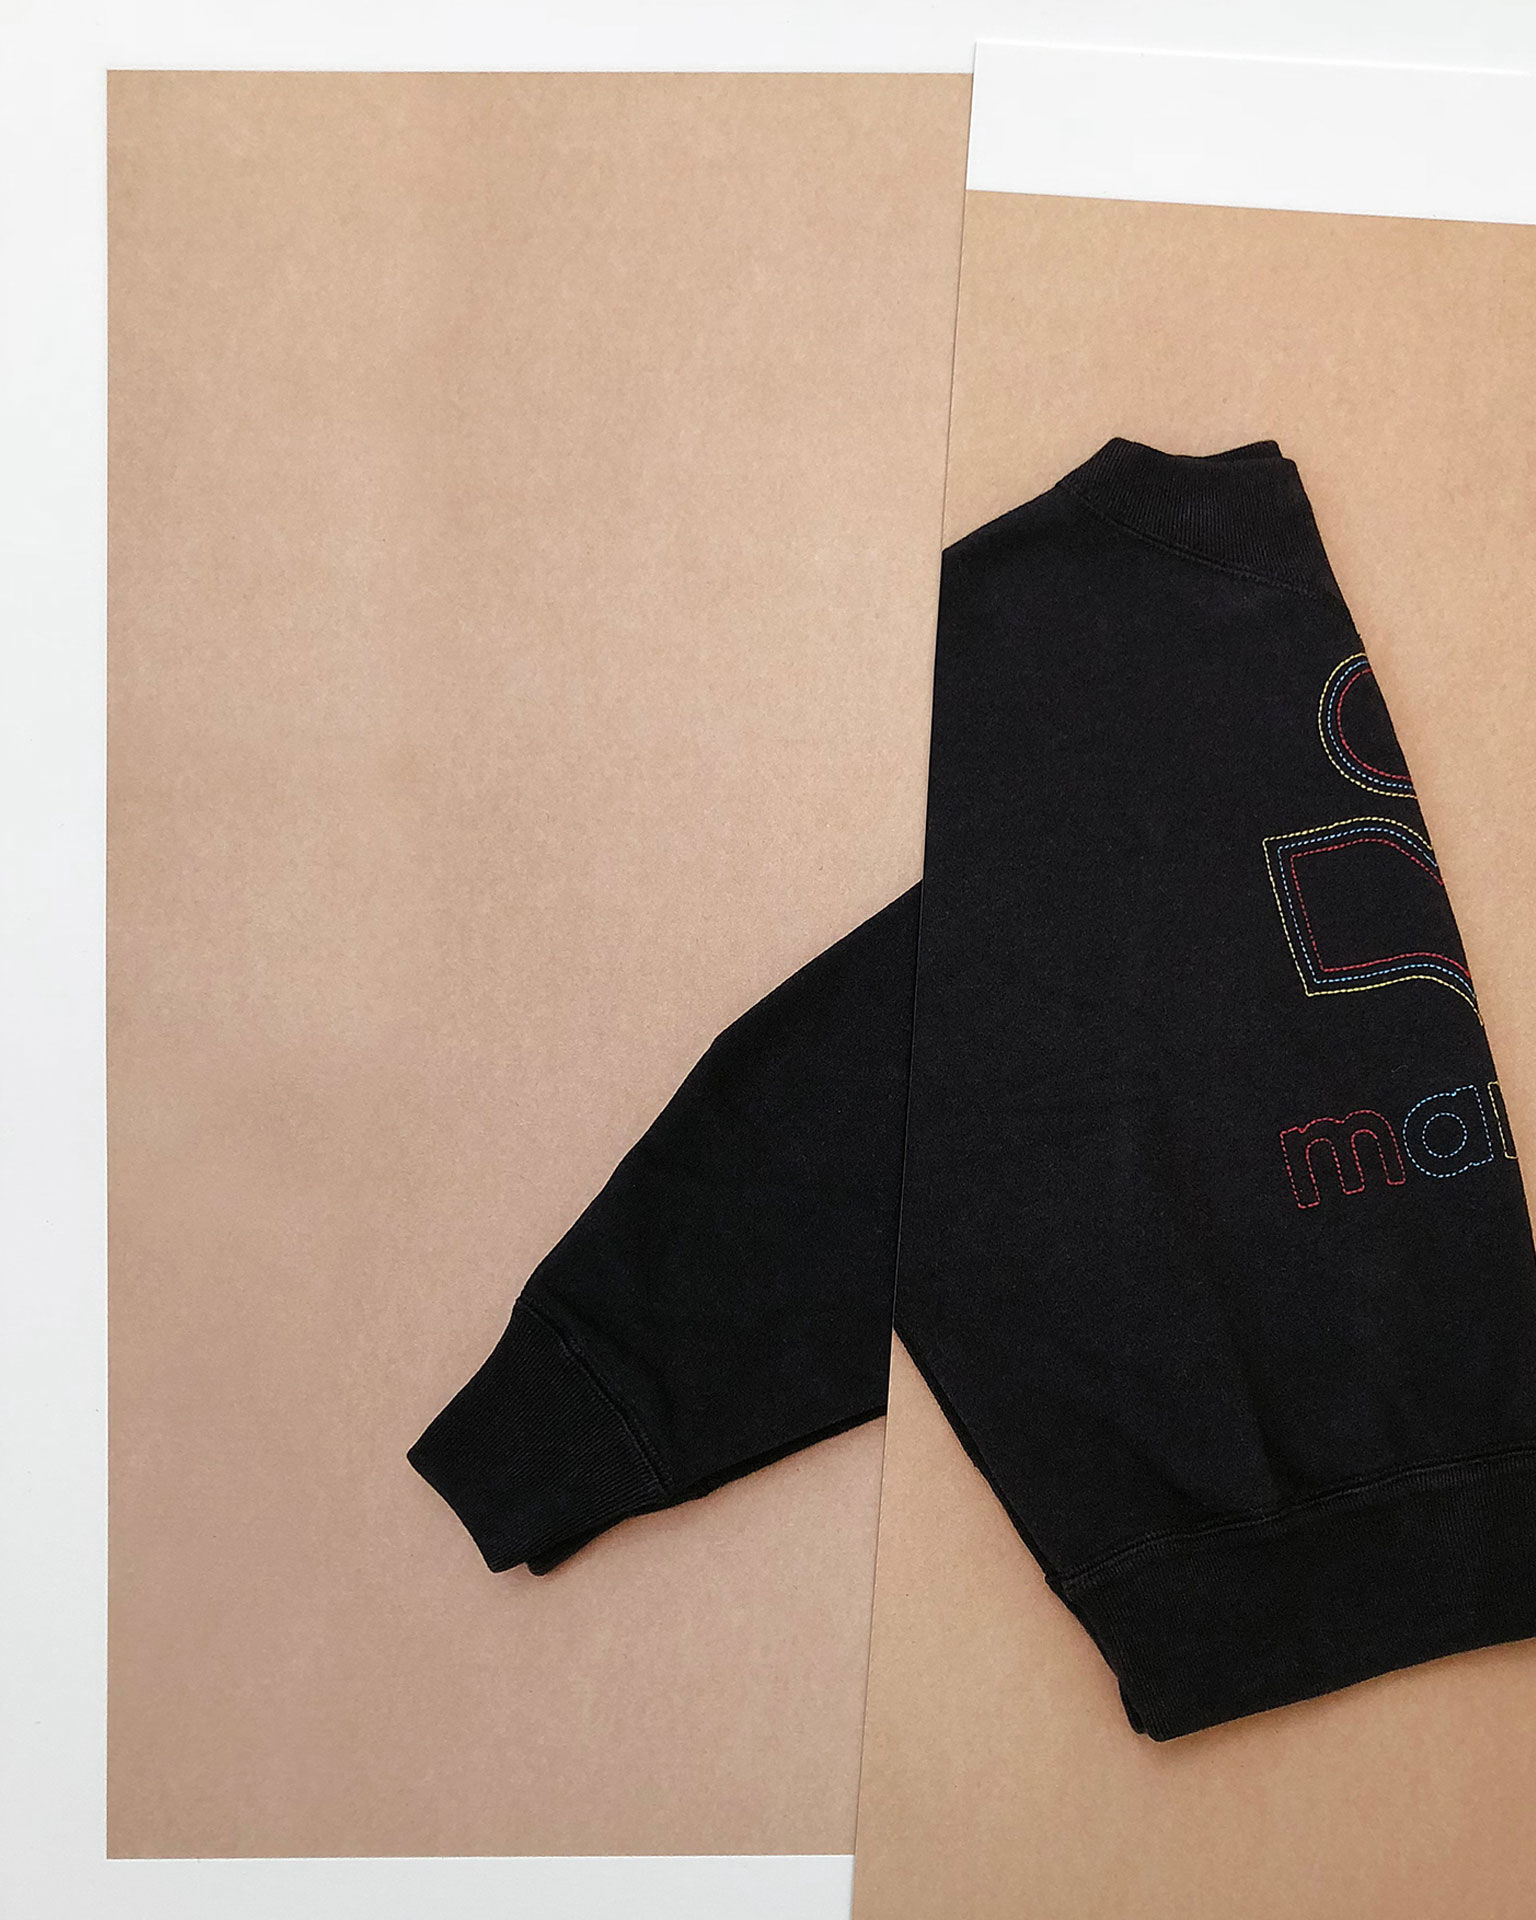 ODILON embroidered sweatshirt